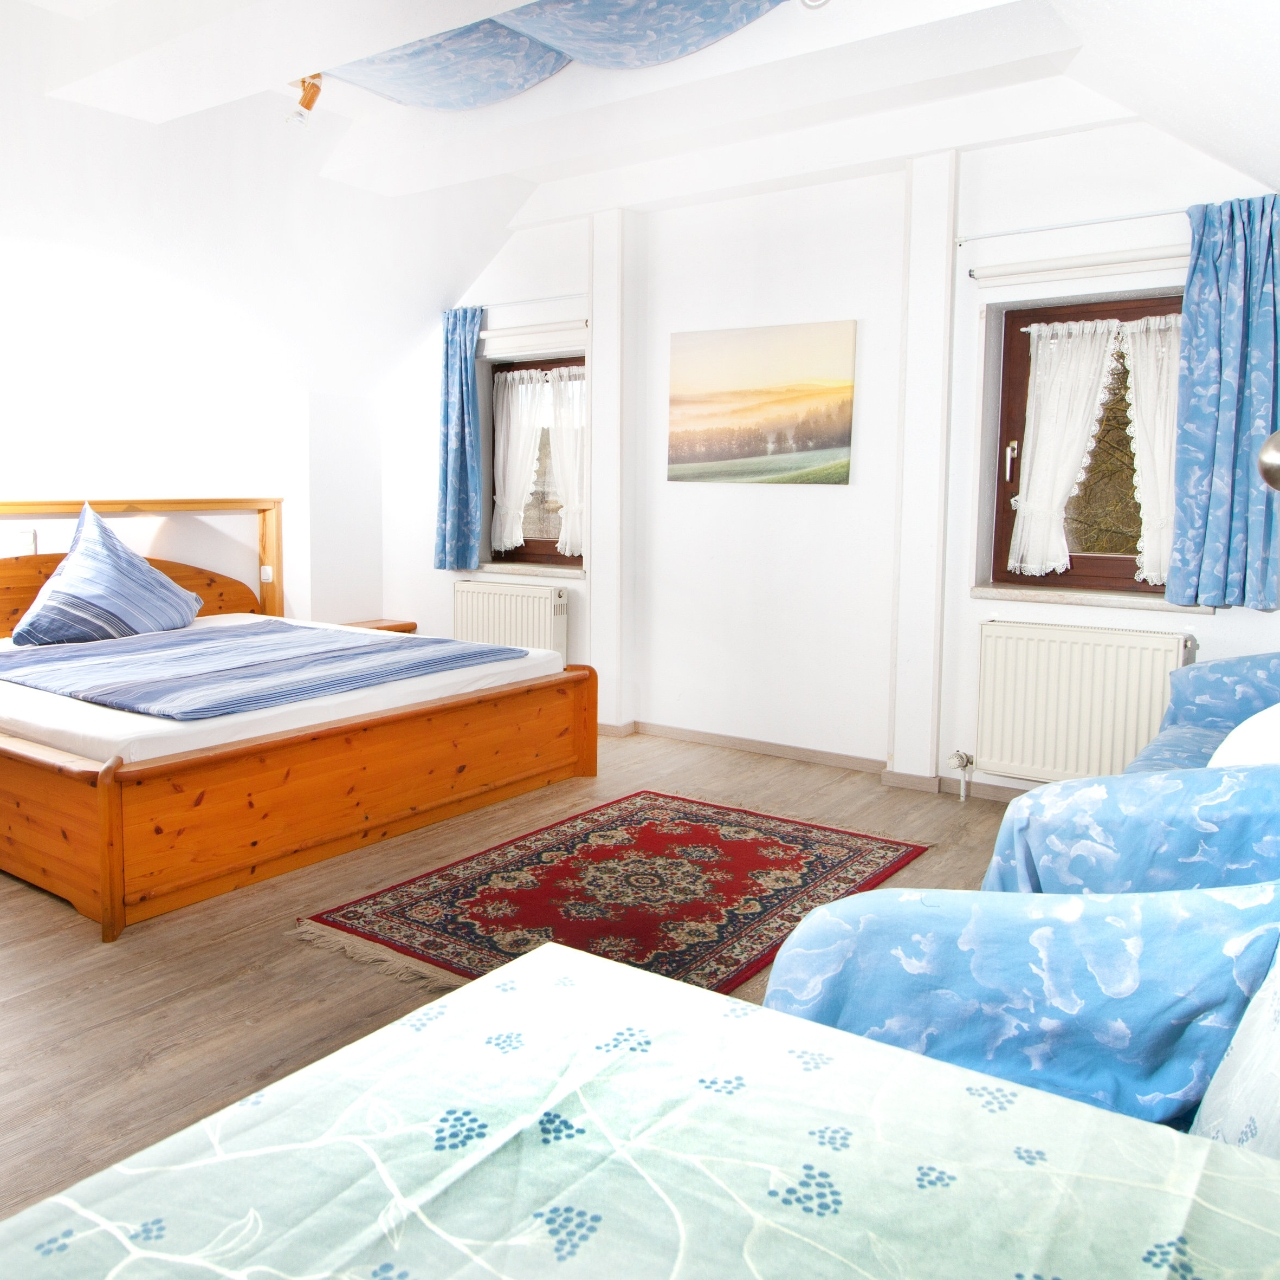 Hallermuhle Pension Seybothenreuth At Hrs With Free Services